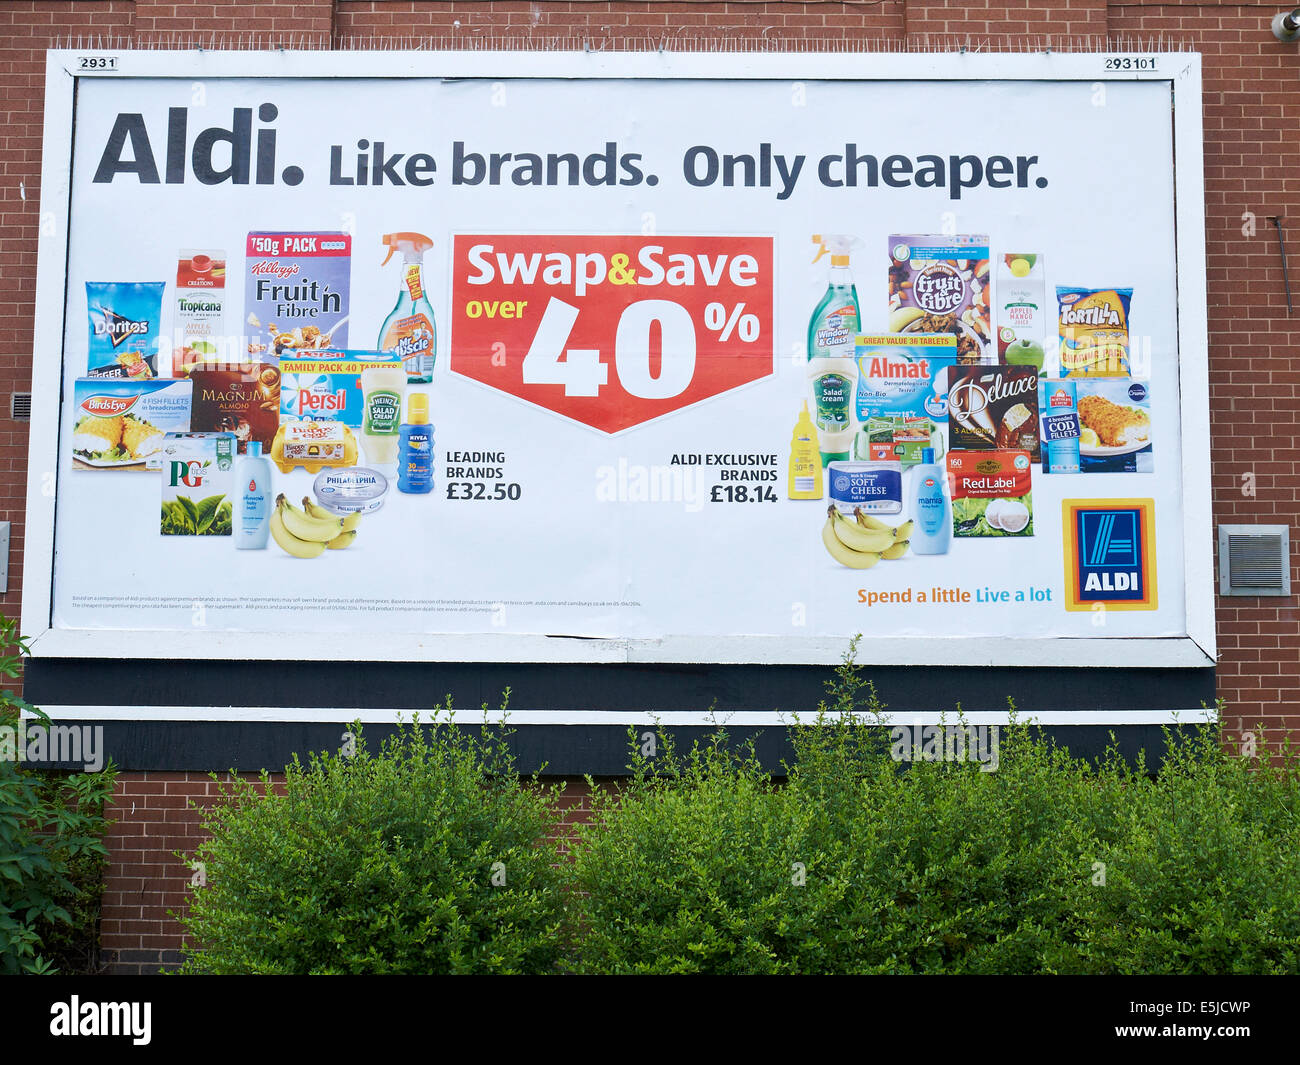 Aldi Reclame Aldi Billboard On Outside Wall Uk Stock Photo Royalty